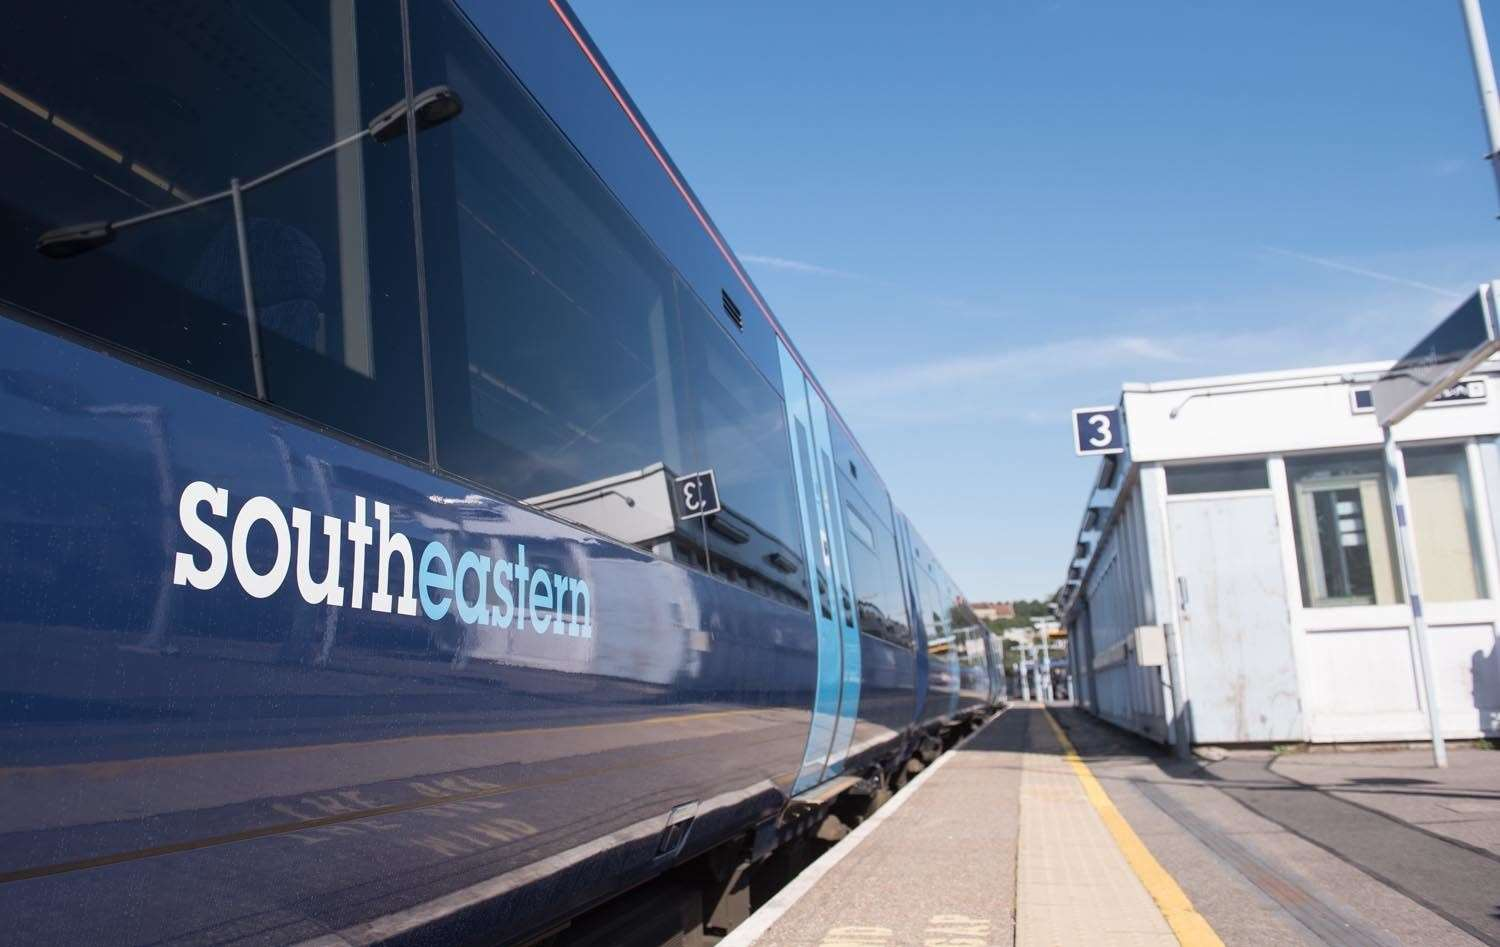 Southeastern users will soon get money back for 15-minute delays